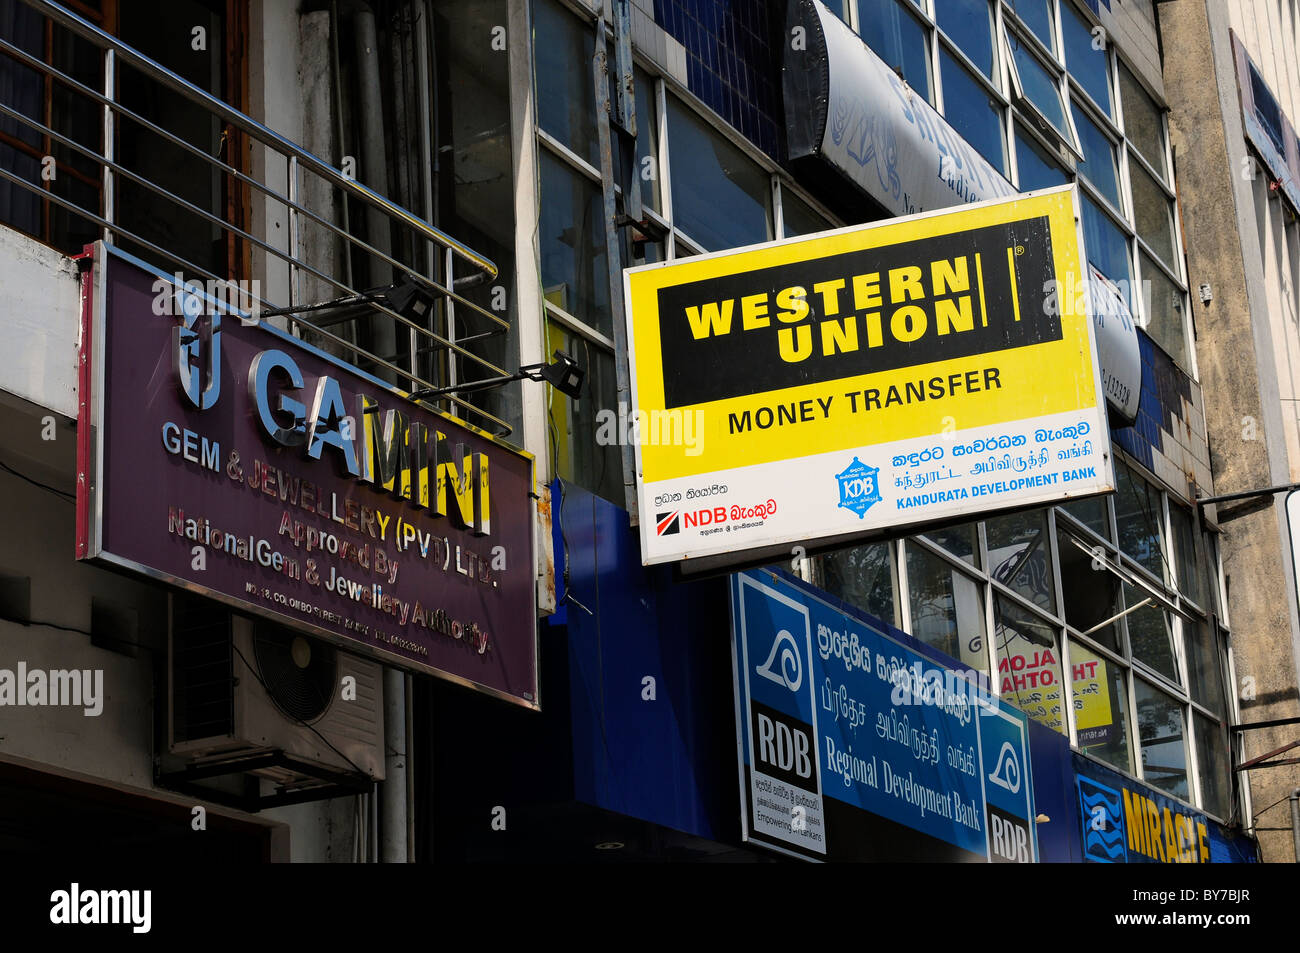 Western union sign photos western union sign images alamy